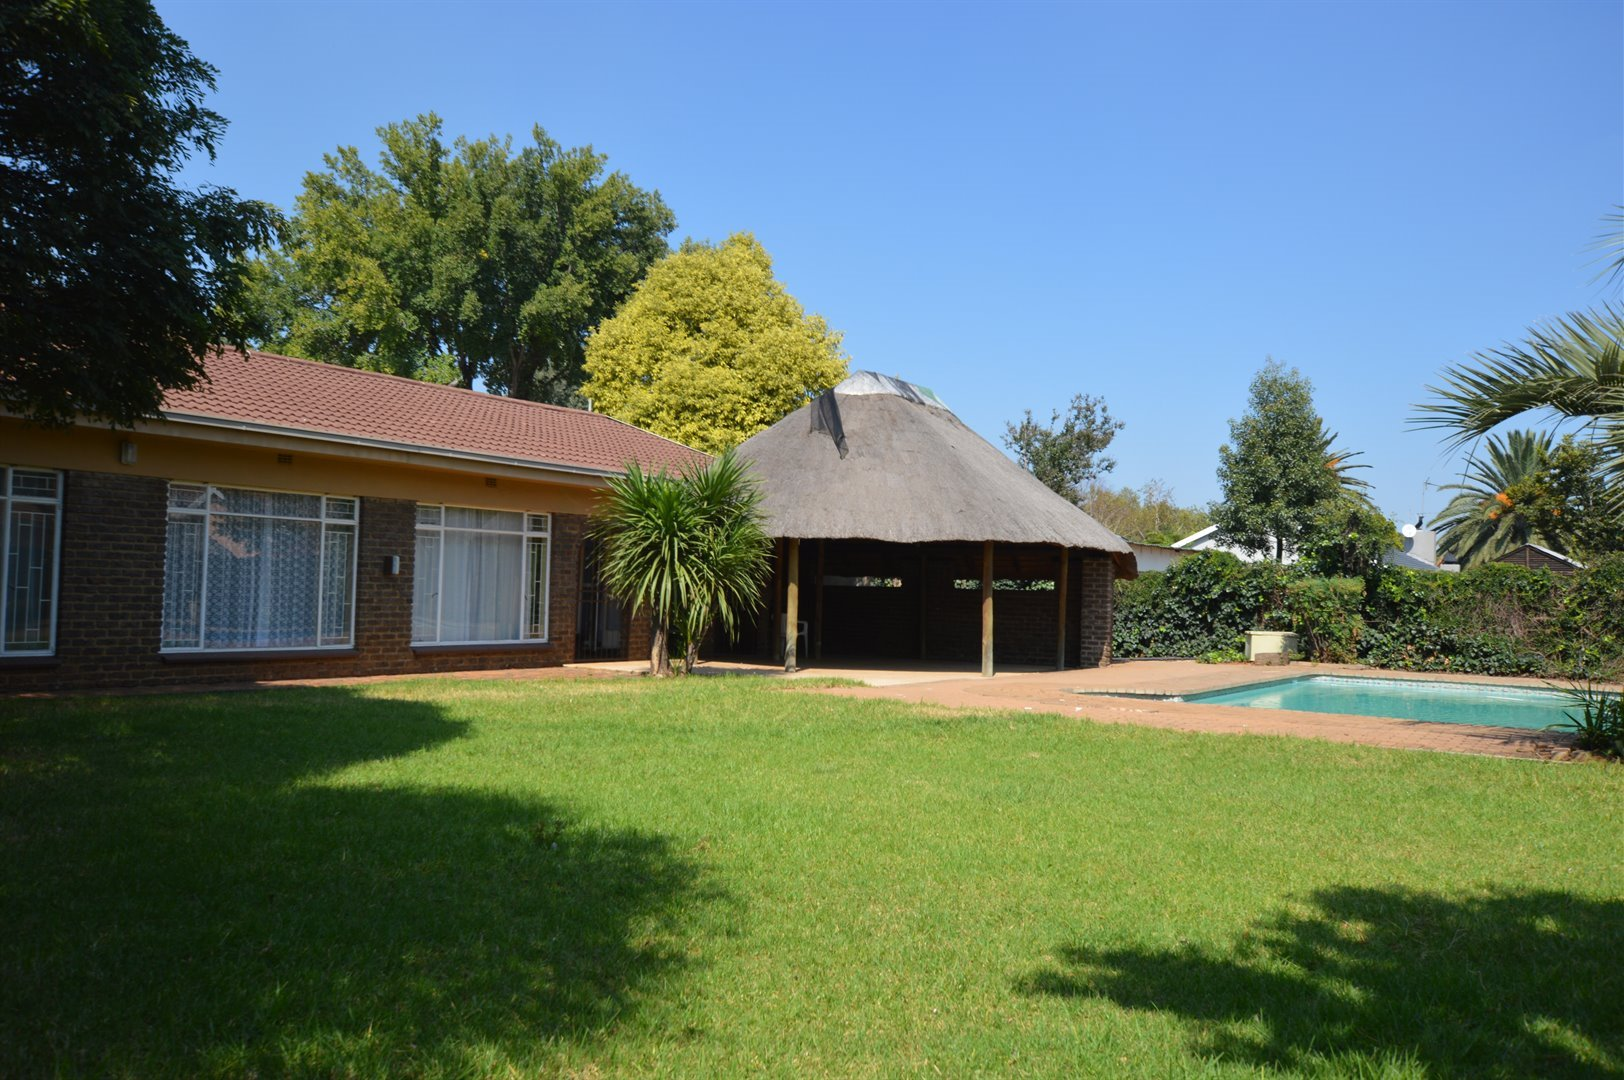 Vanderbijlpark Se 2 property for sale. Ref No: 13623209. Picture no 31